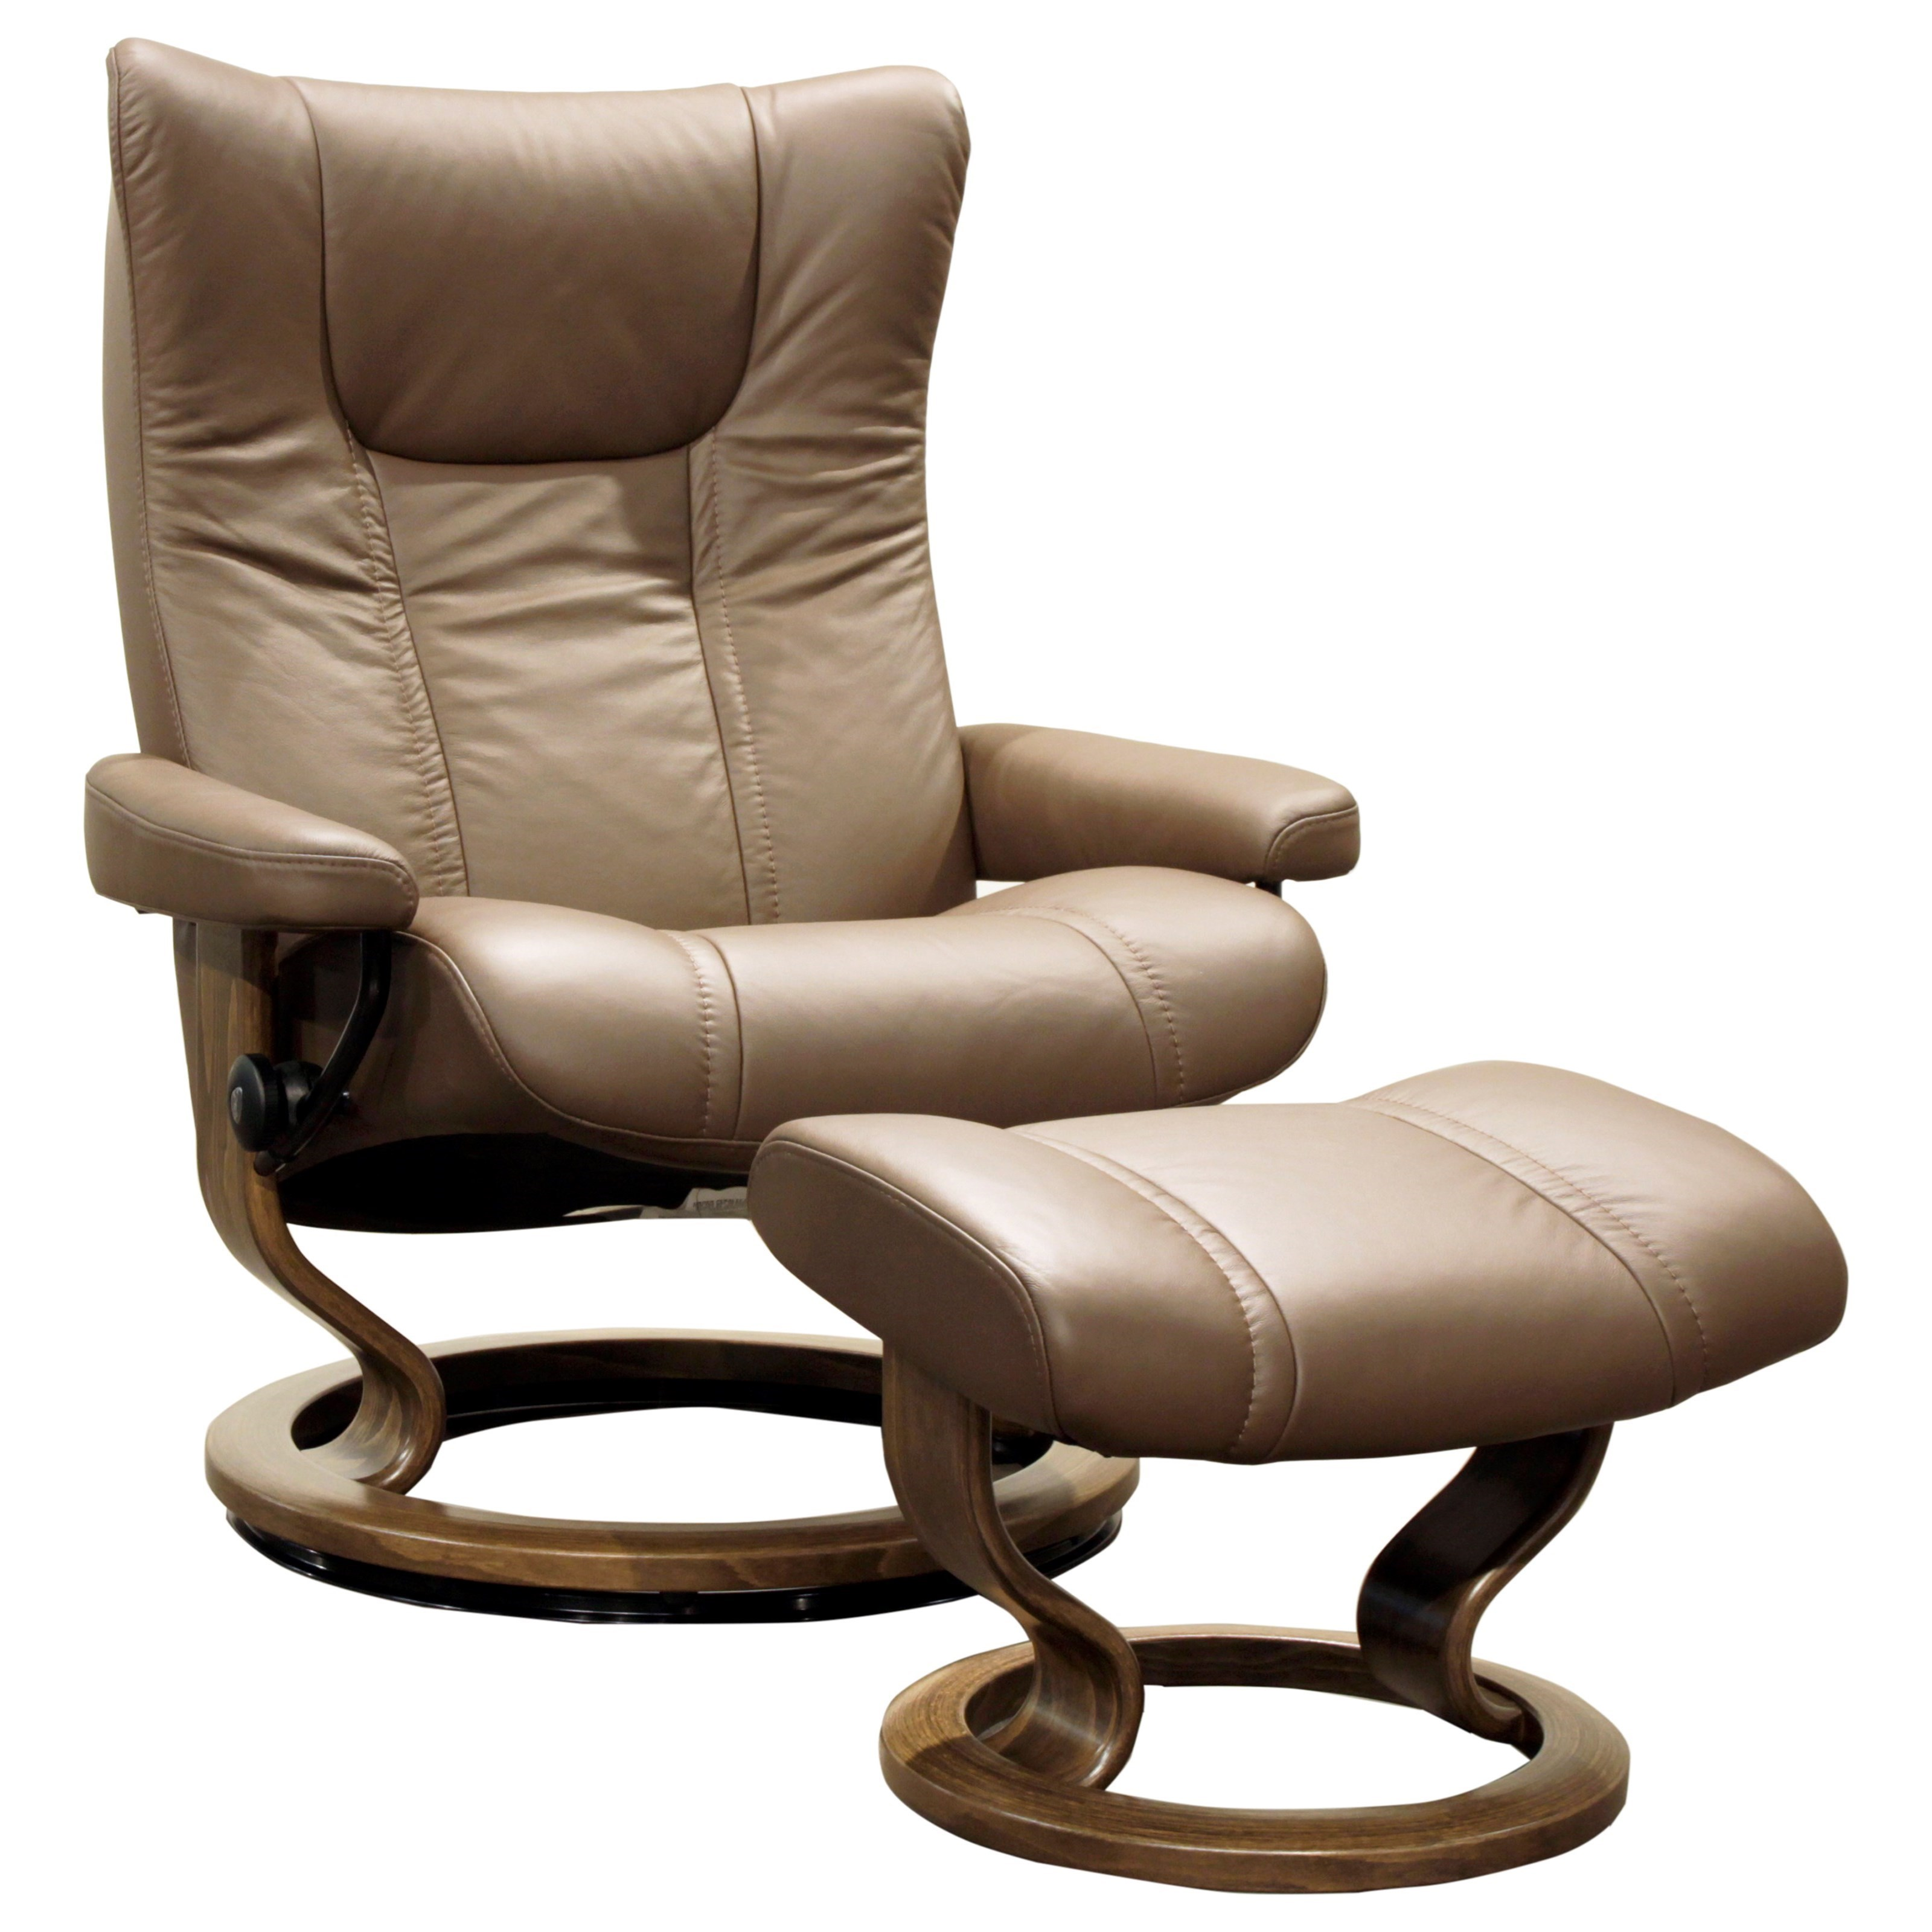 Stressless-world.com Wing Large Stressless Chair Ottoman By Stressless At Homeworld Furniture